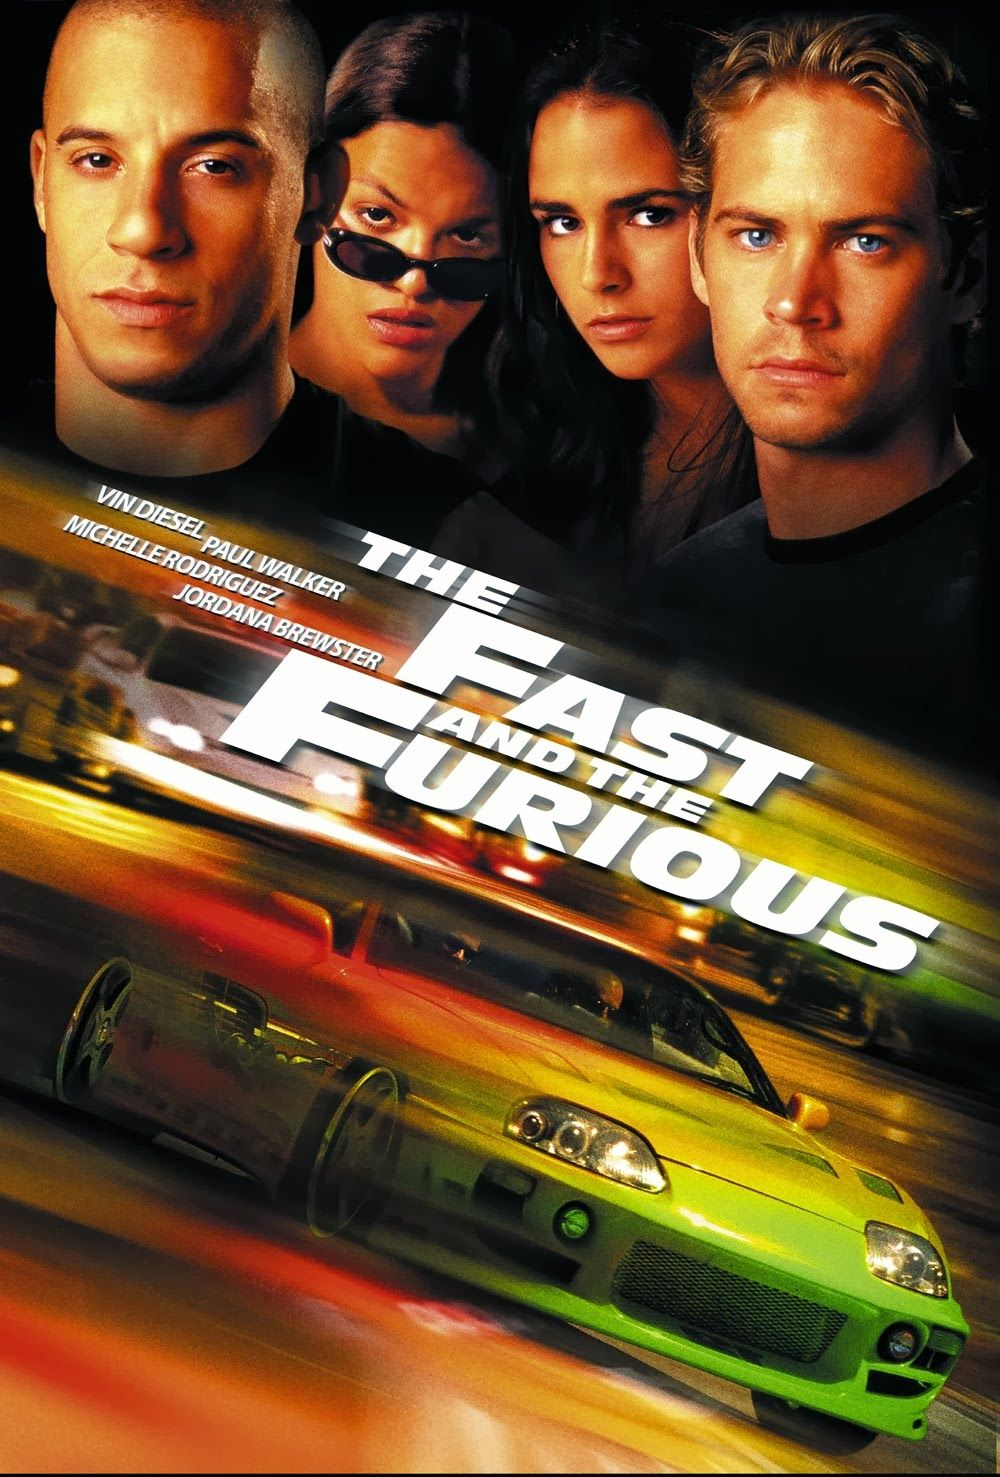 Fast & Furious YIFY subtitles